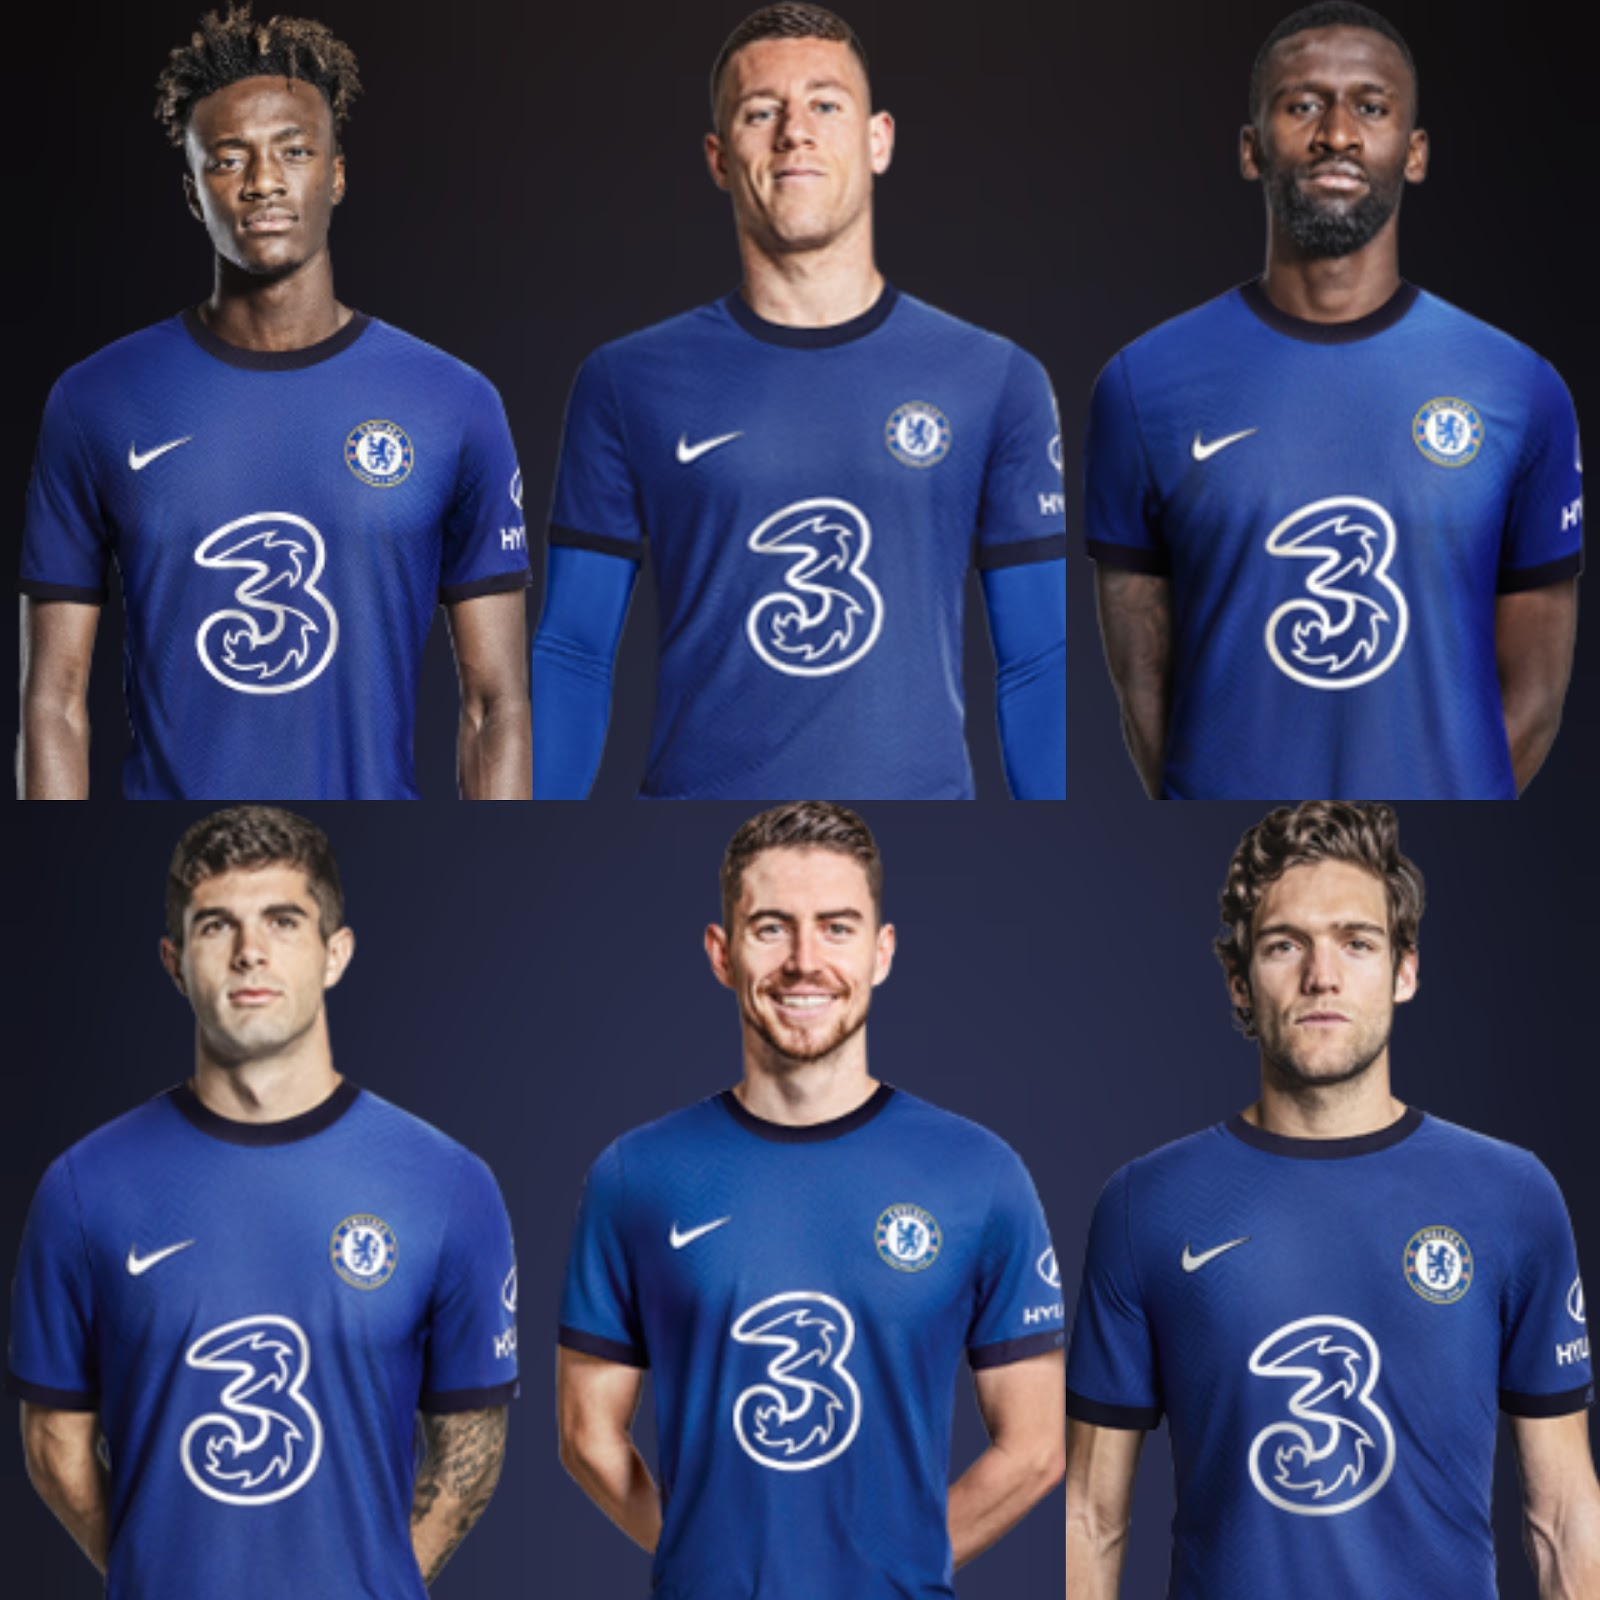 Chelsea Fc Players Profile Squad 2020 21 Full Name Nationality Height Weight Age Date Of Birth Parents Name